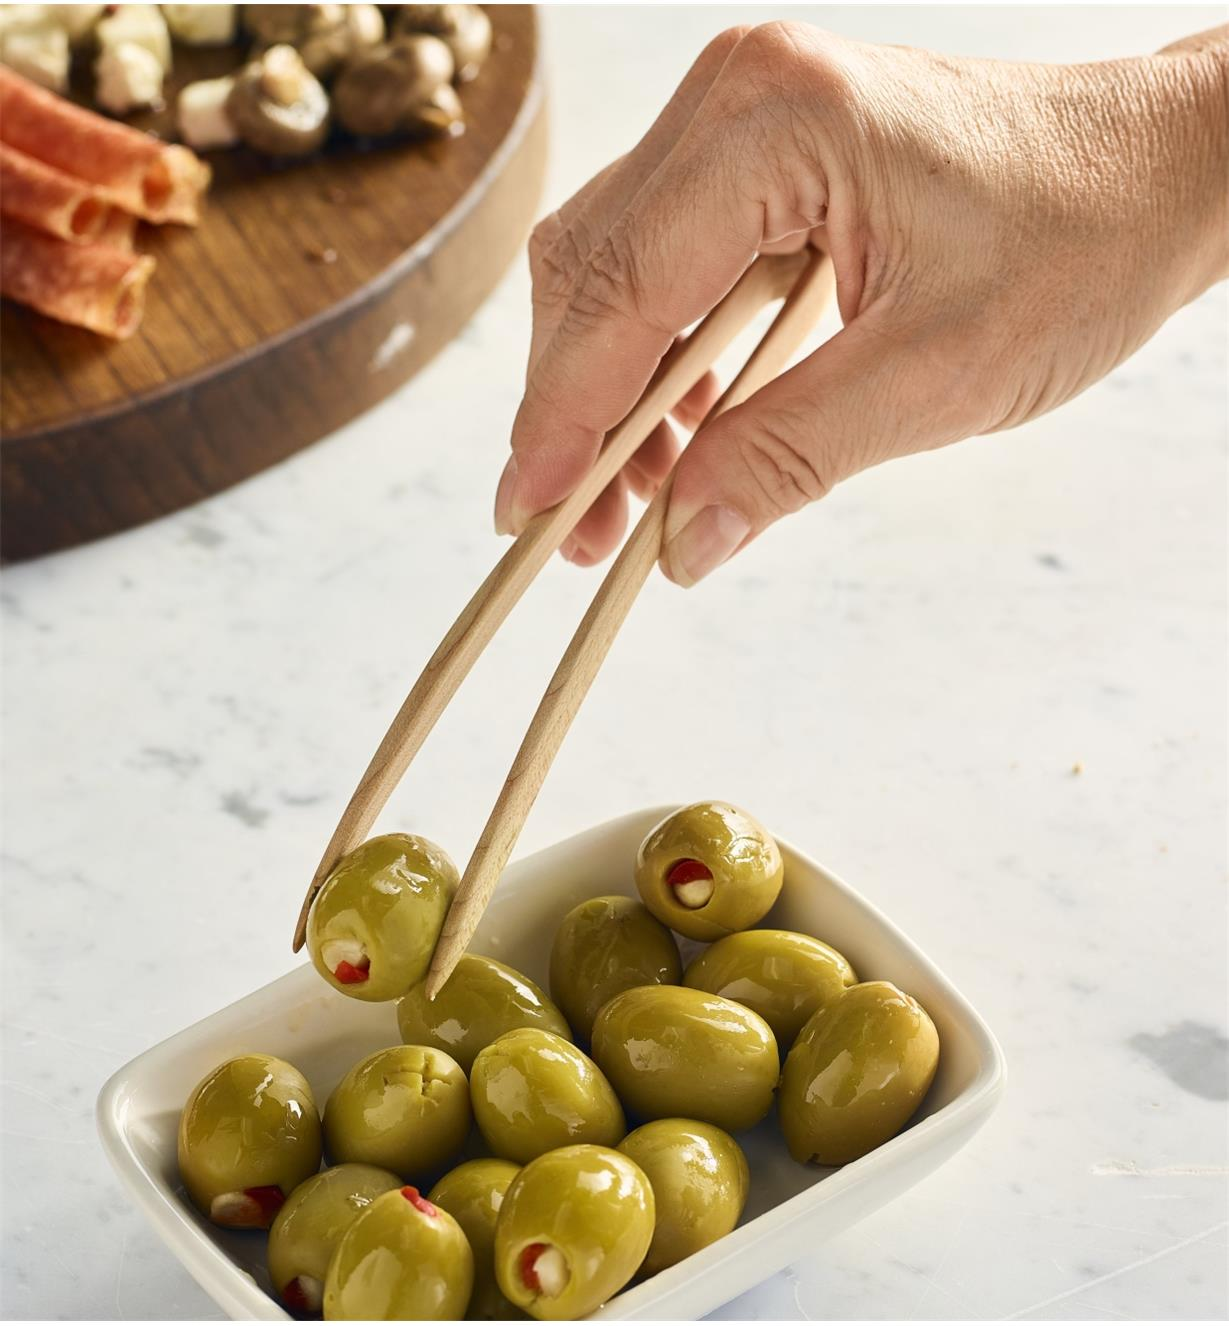 Picking up olives with the small tongs